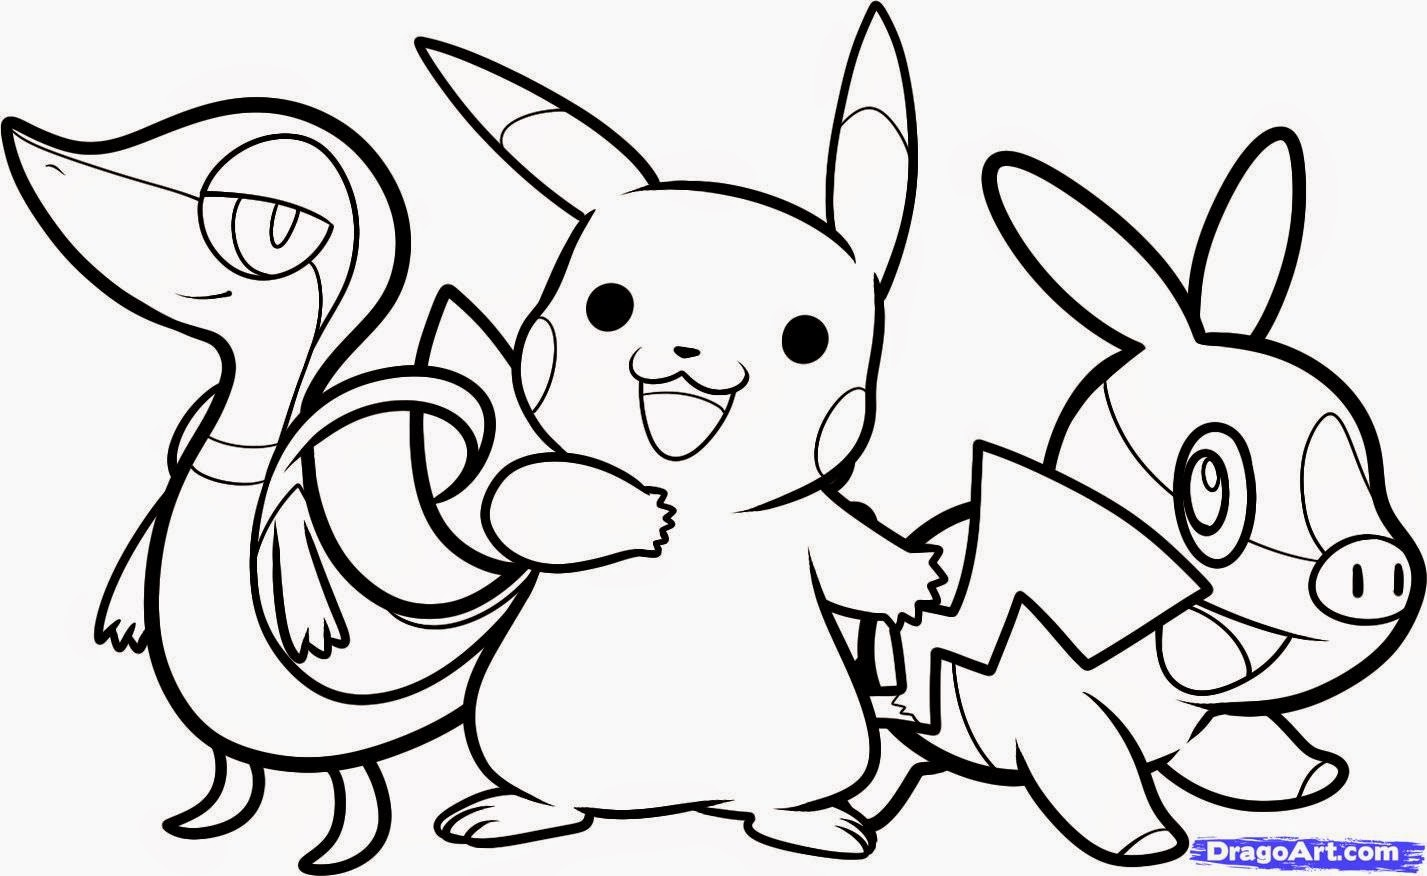 Coloriage pokemon imprimer liberate - Carte de pokemon a imprimer ...